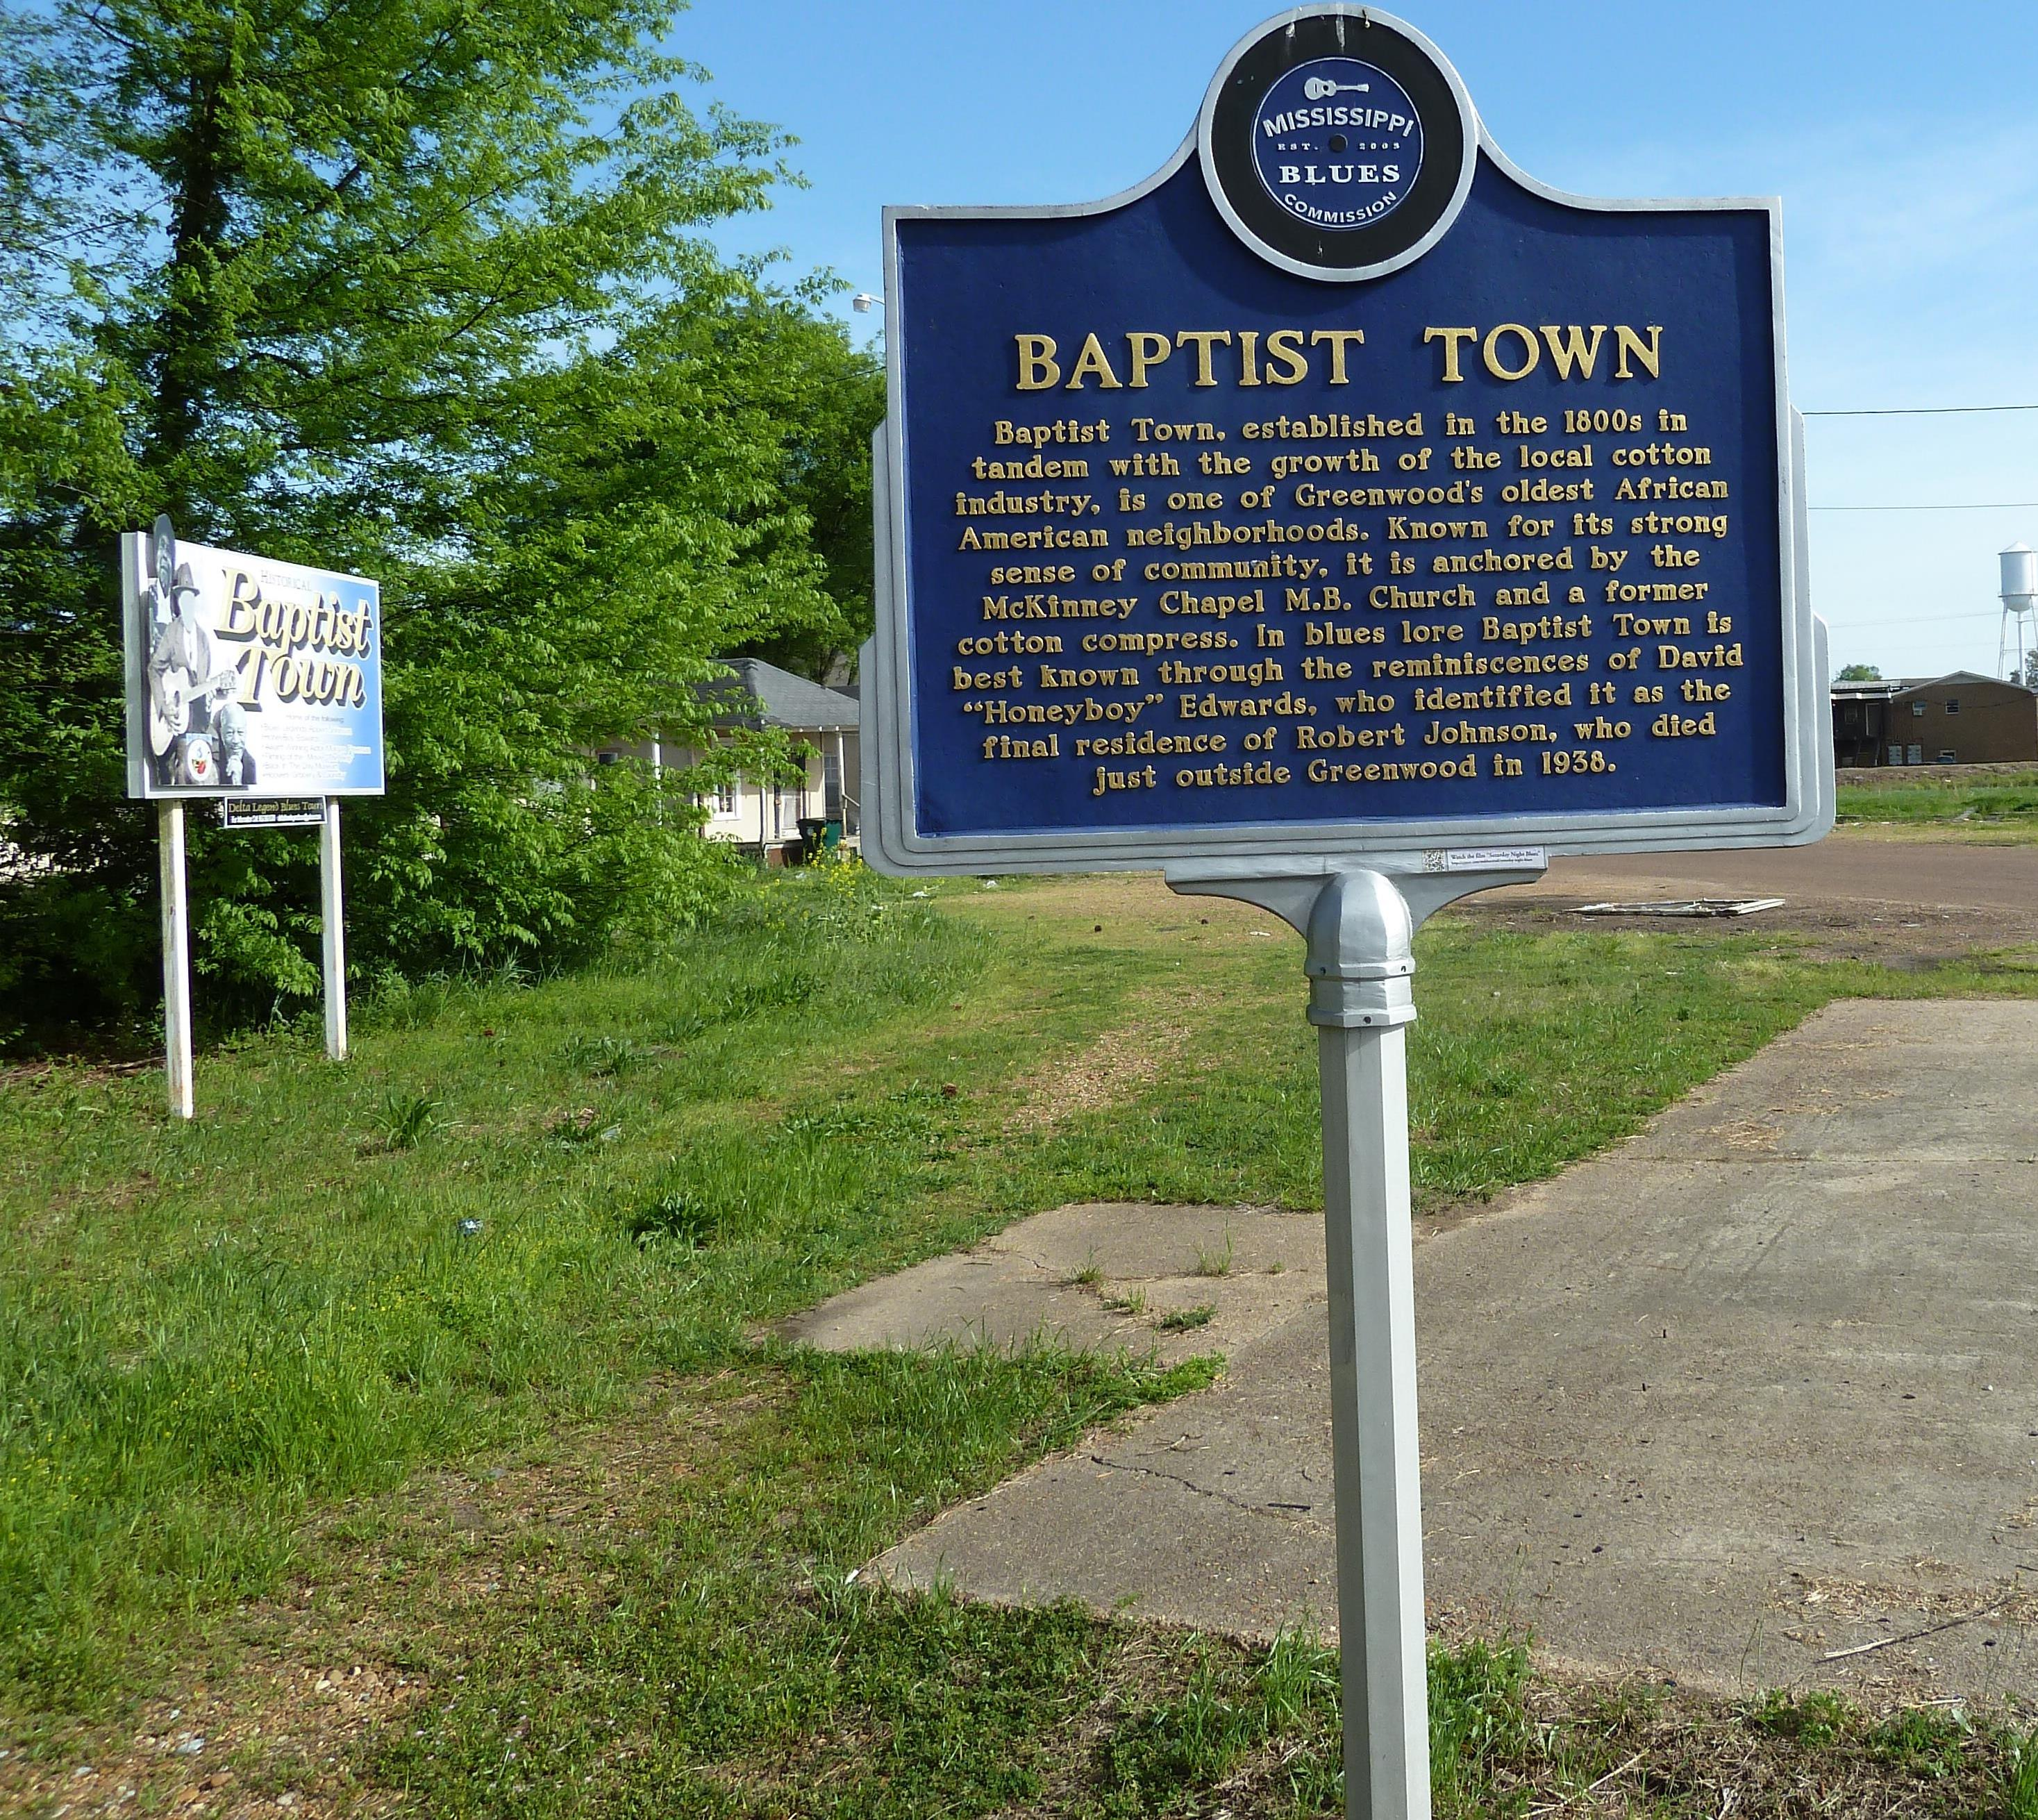 Baptist Town Mississippi-Trail Blues Marker